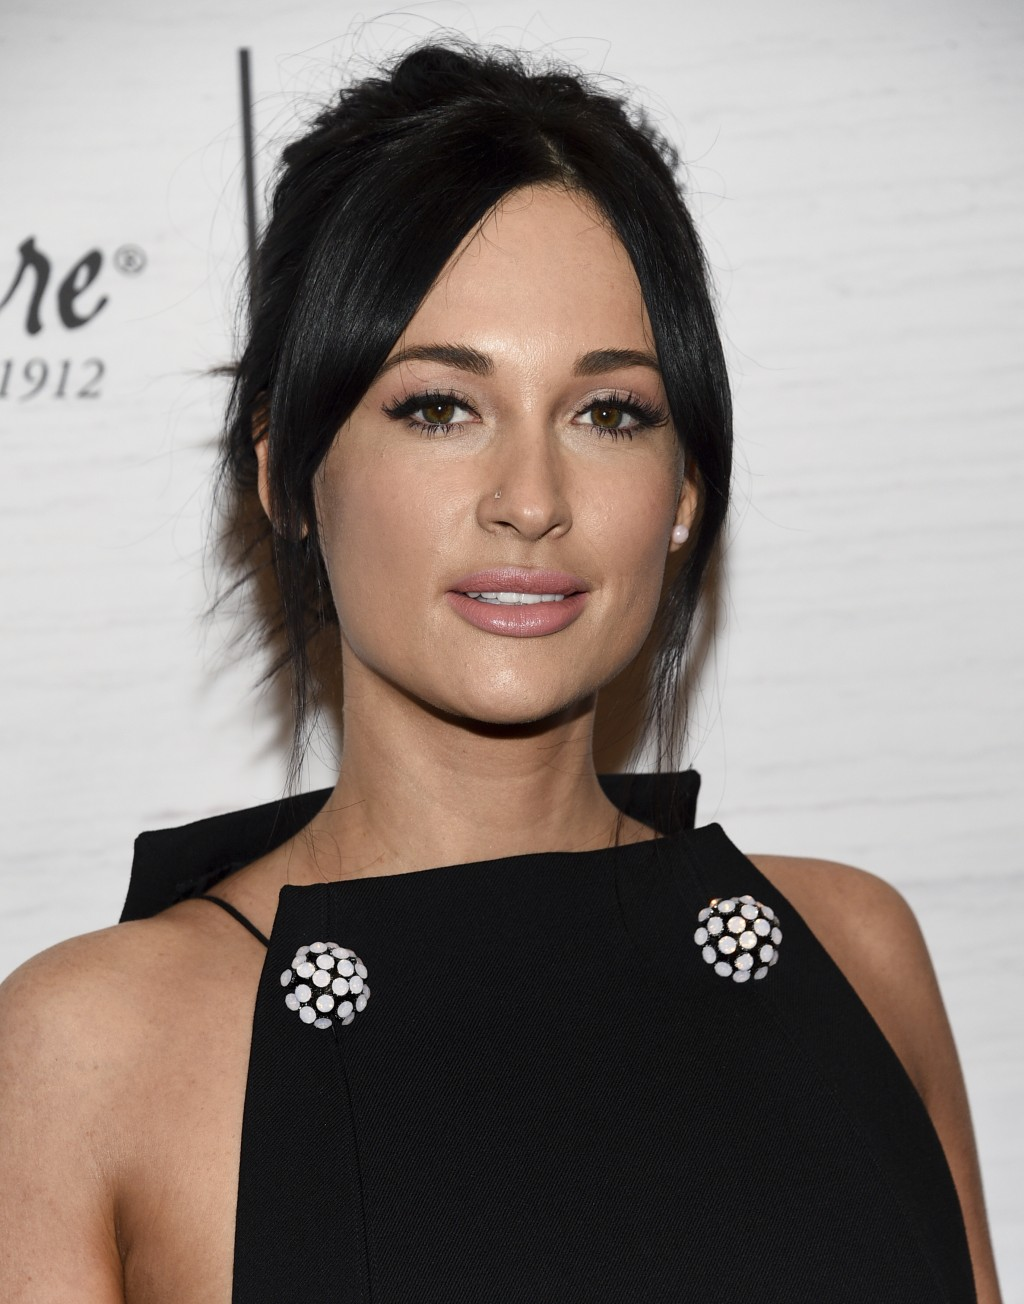 Singer-songwriter Kasey Musgraves attends Variety's Power of Women: New York presented by Lifetime at Cipriani 42nd Street on Friday, April 5, 2019, i